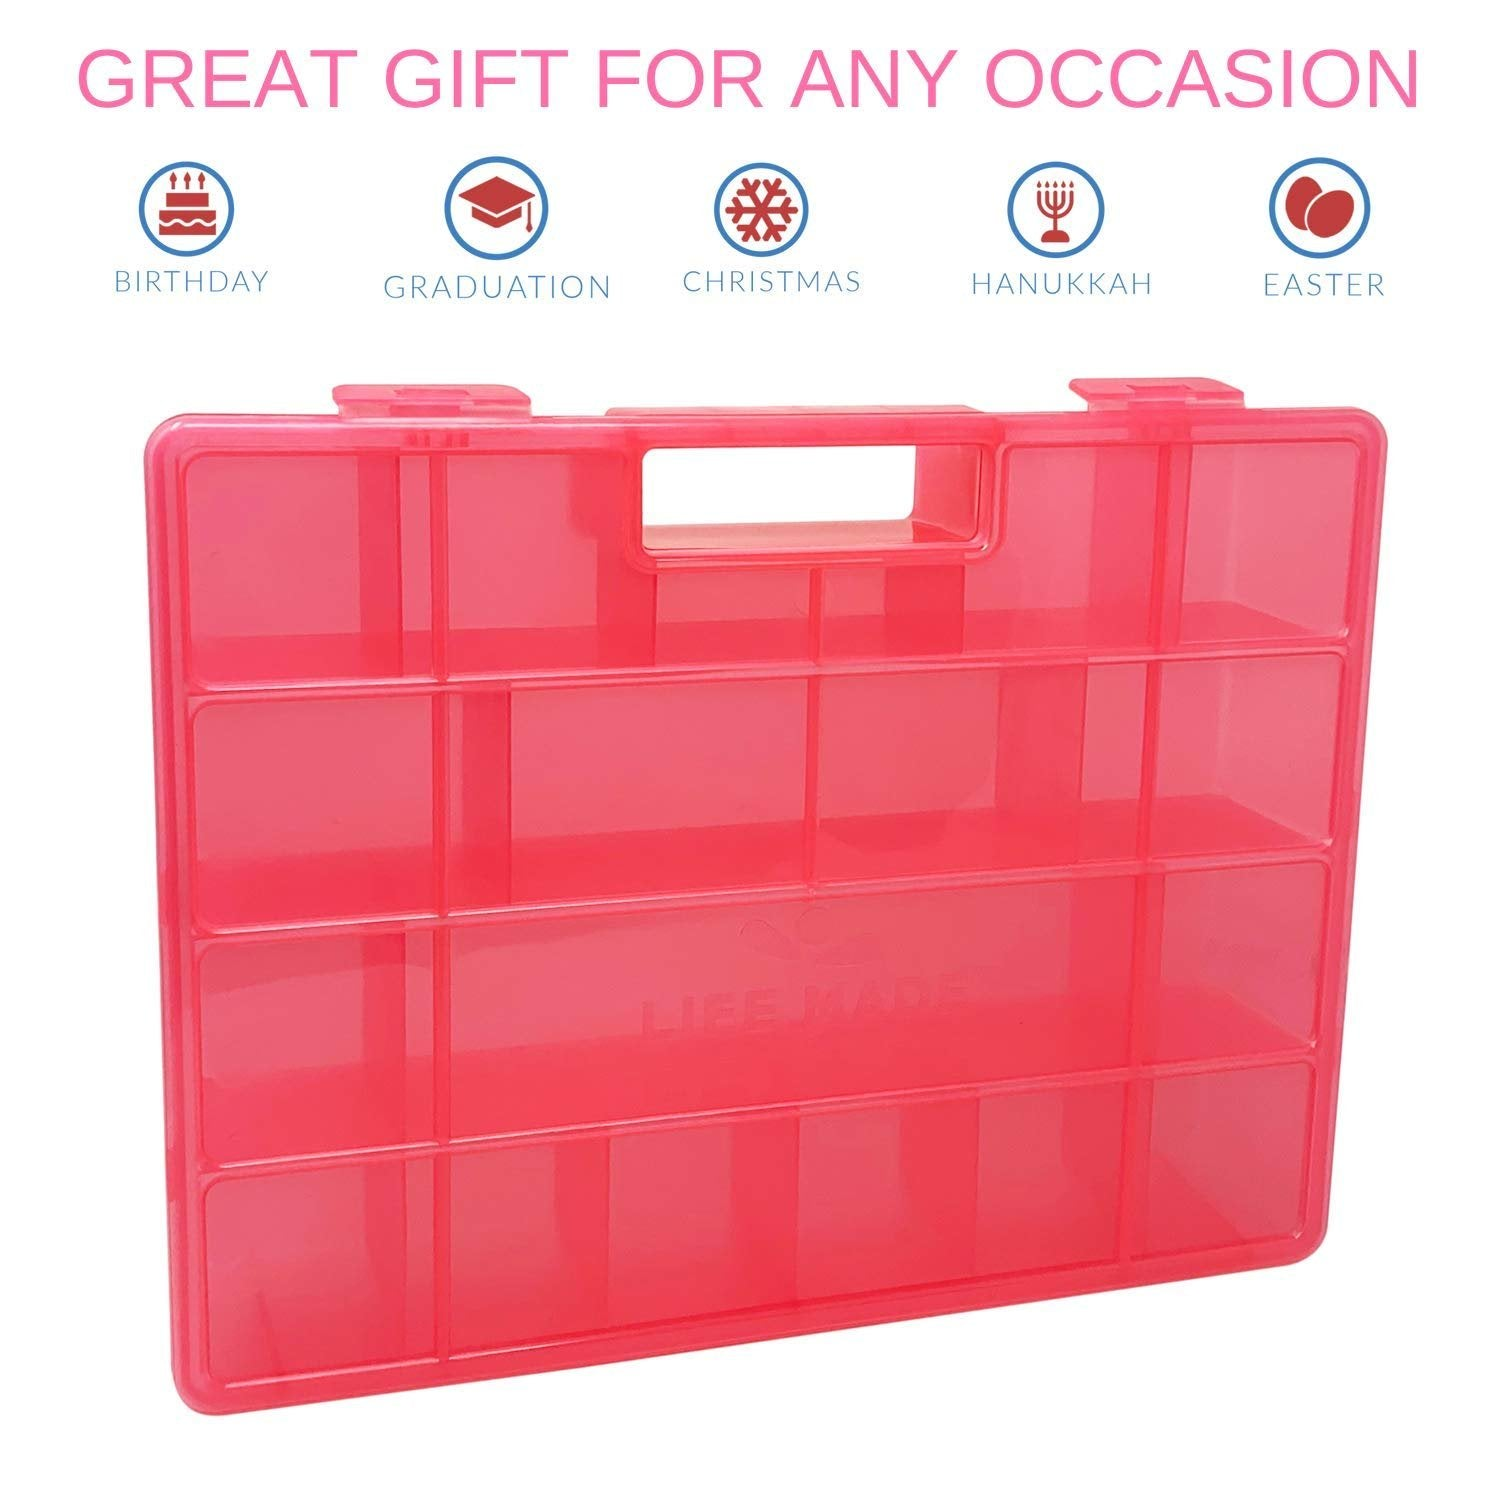 Life Made Better, a Fun Favorite Pink Toy Storage Carrying Box, Compatible with Littlest Pet Shop Figures & Toys, Made for Kids by LMB, Teach Organization & Sorting